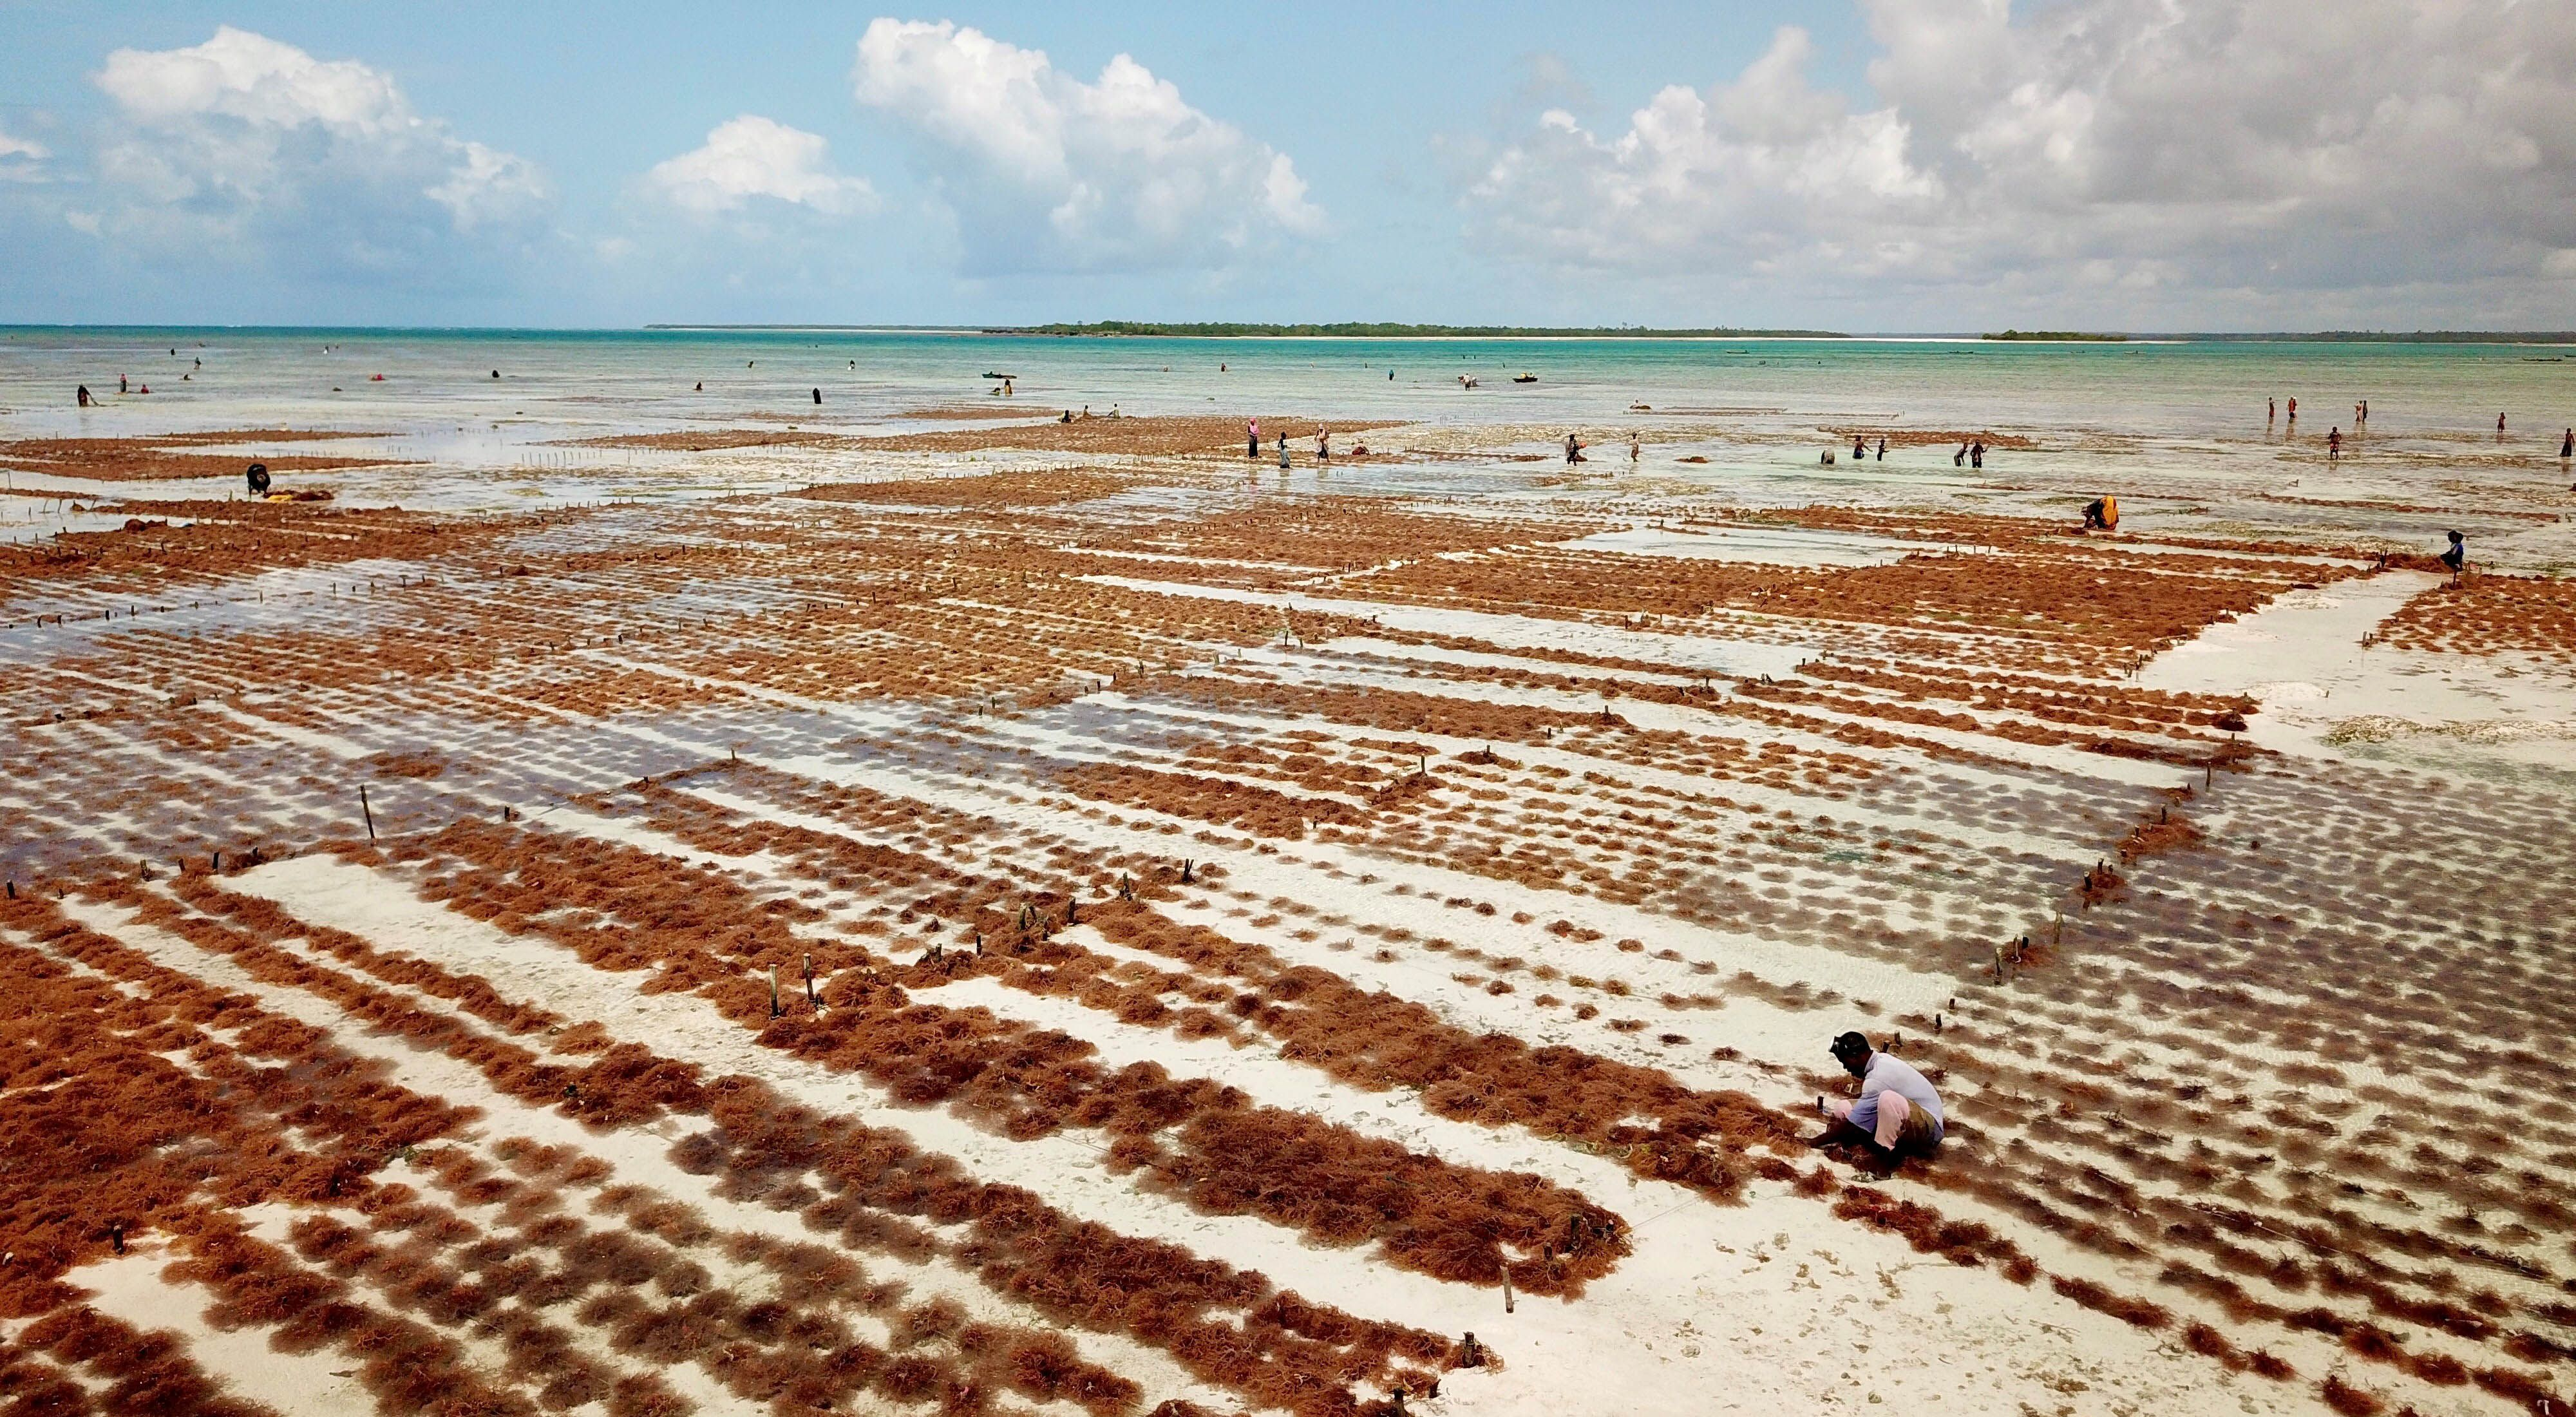 a wide view of rows of red seaweed growing in shallow water, with people tending to the rows